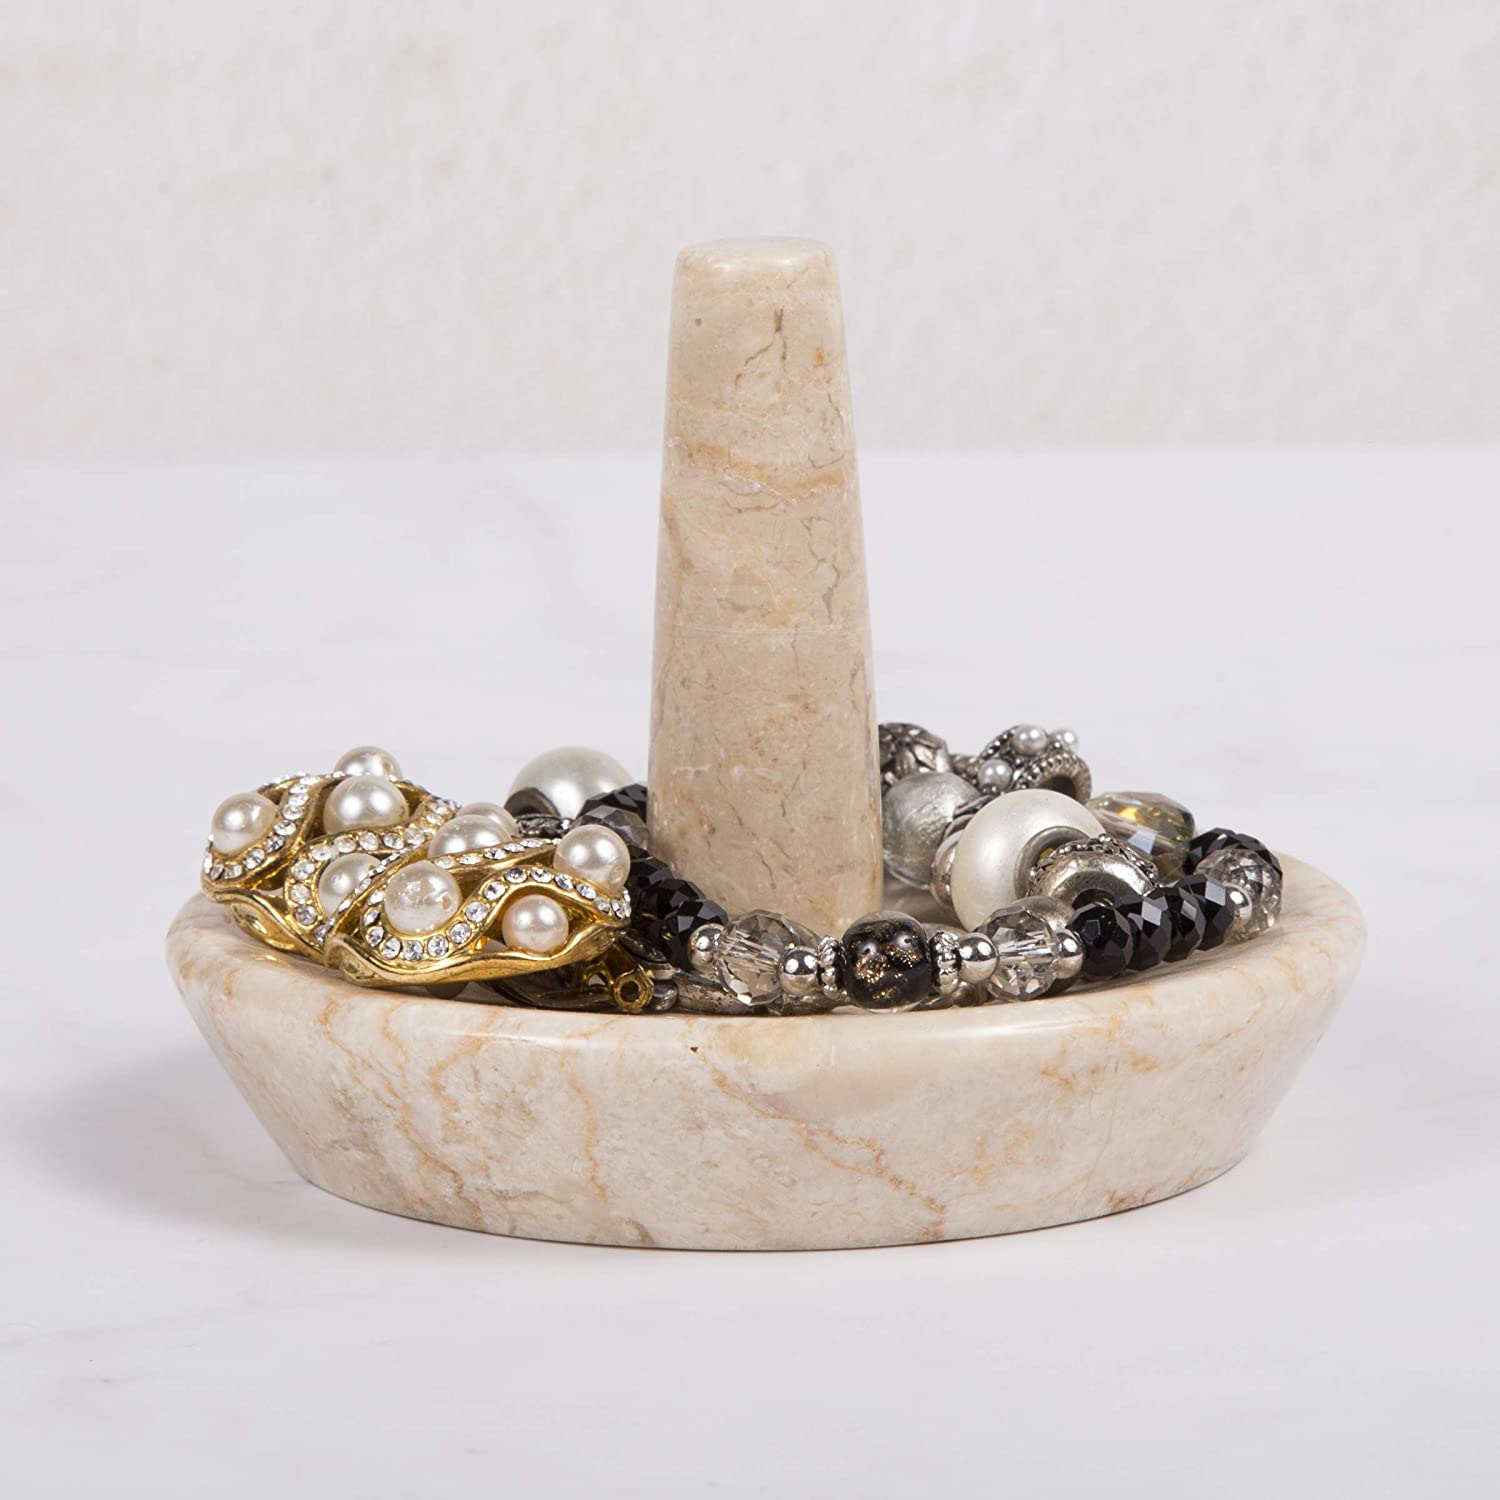 4 Diam Creative Home Champagne Marble Ring Holder Jewelry Tray x 3-1//8 H